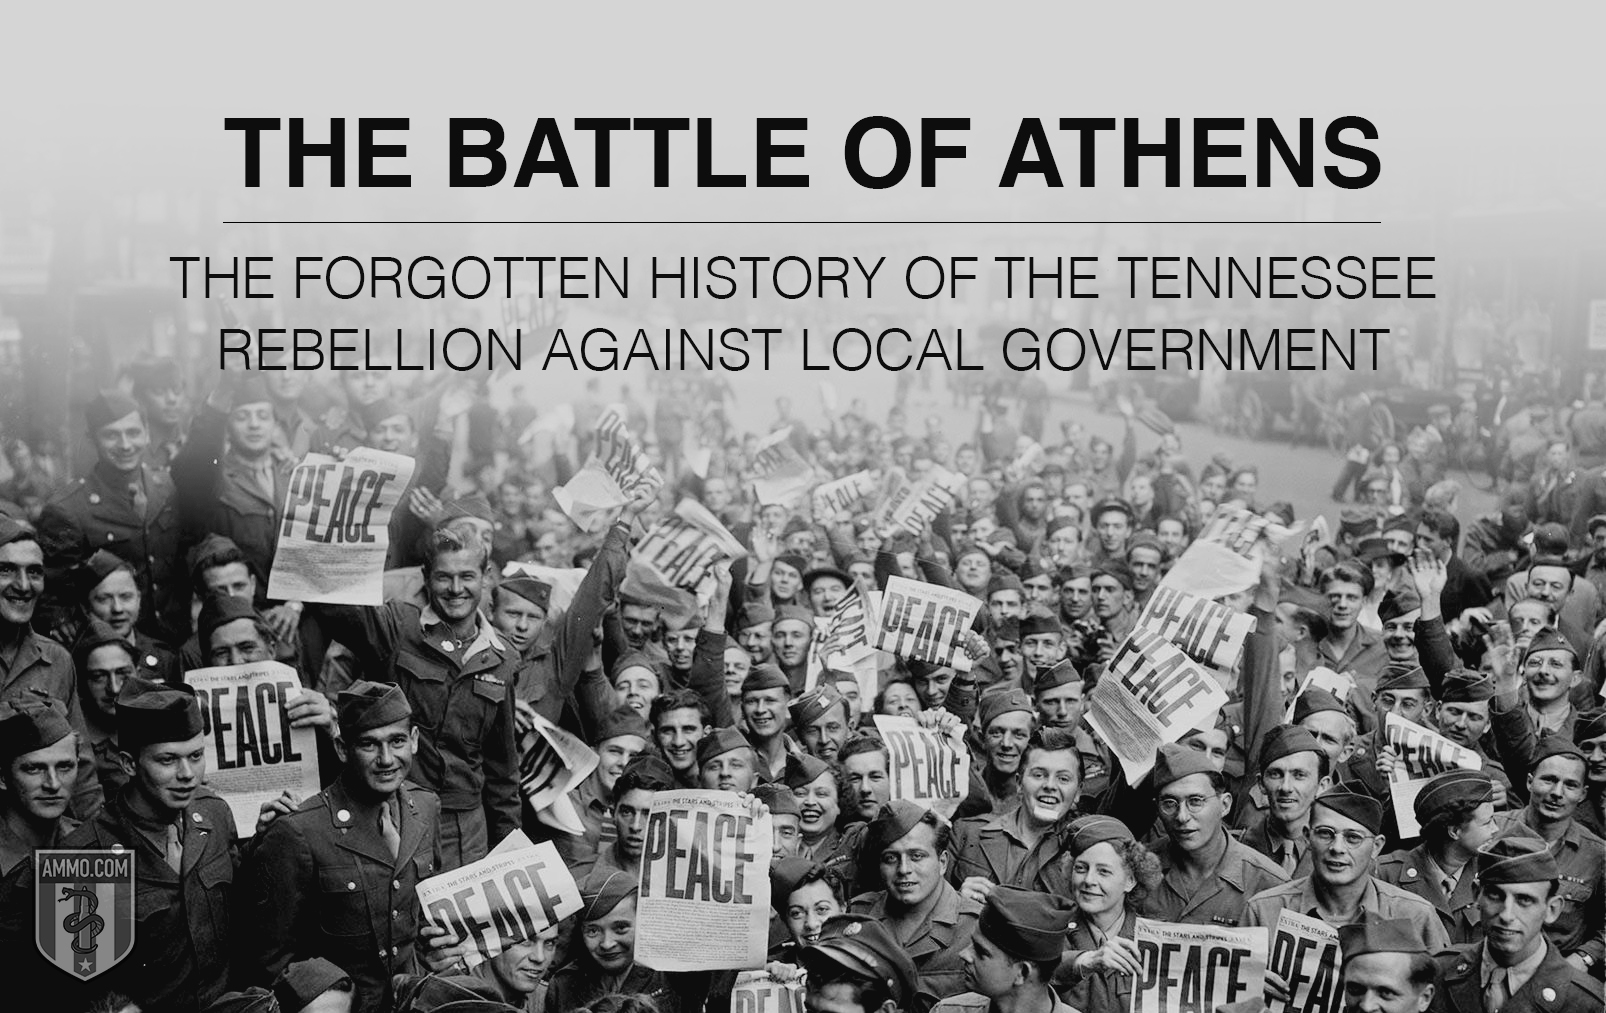 Battle of Athens: The Forgotten History of the Tennessee Rebellion Against Local Government